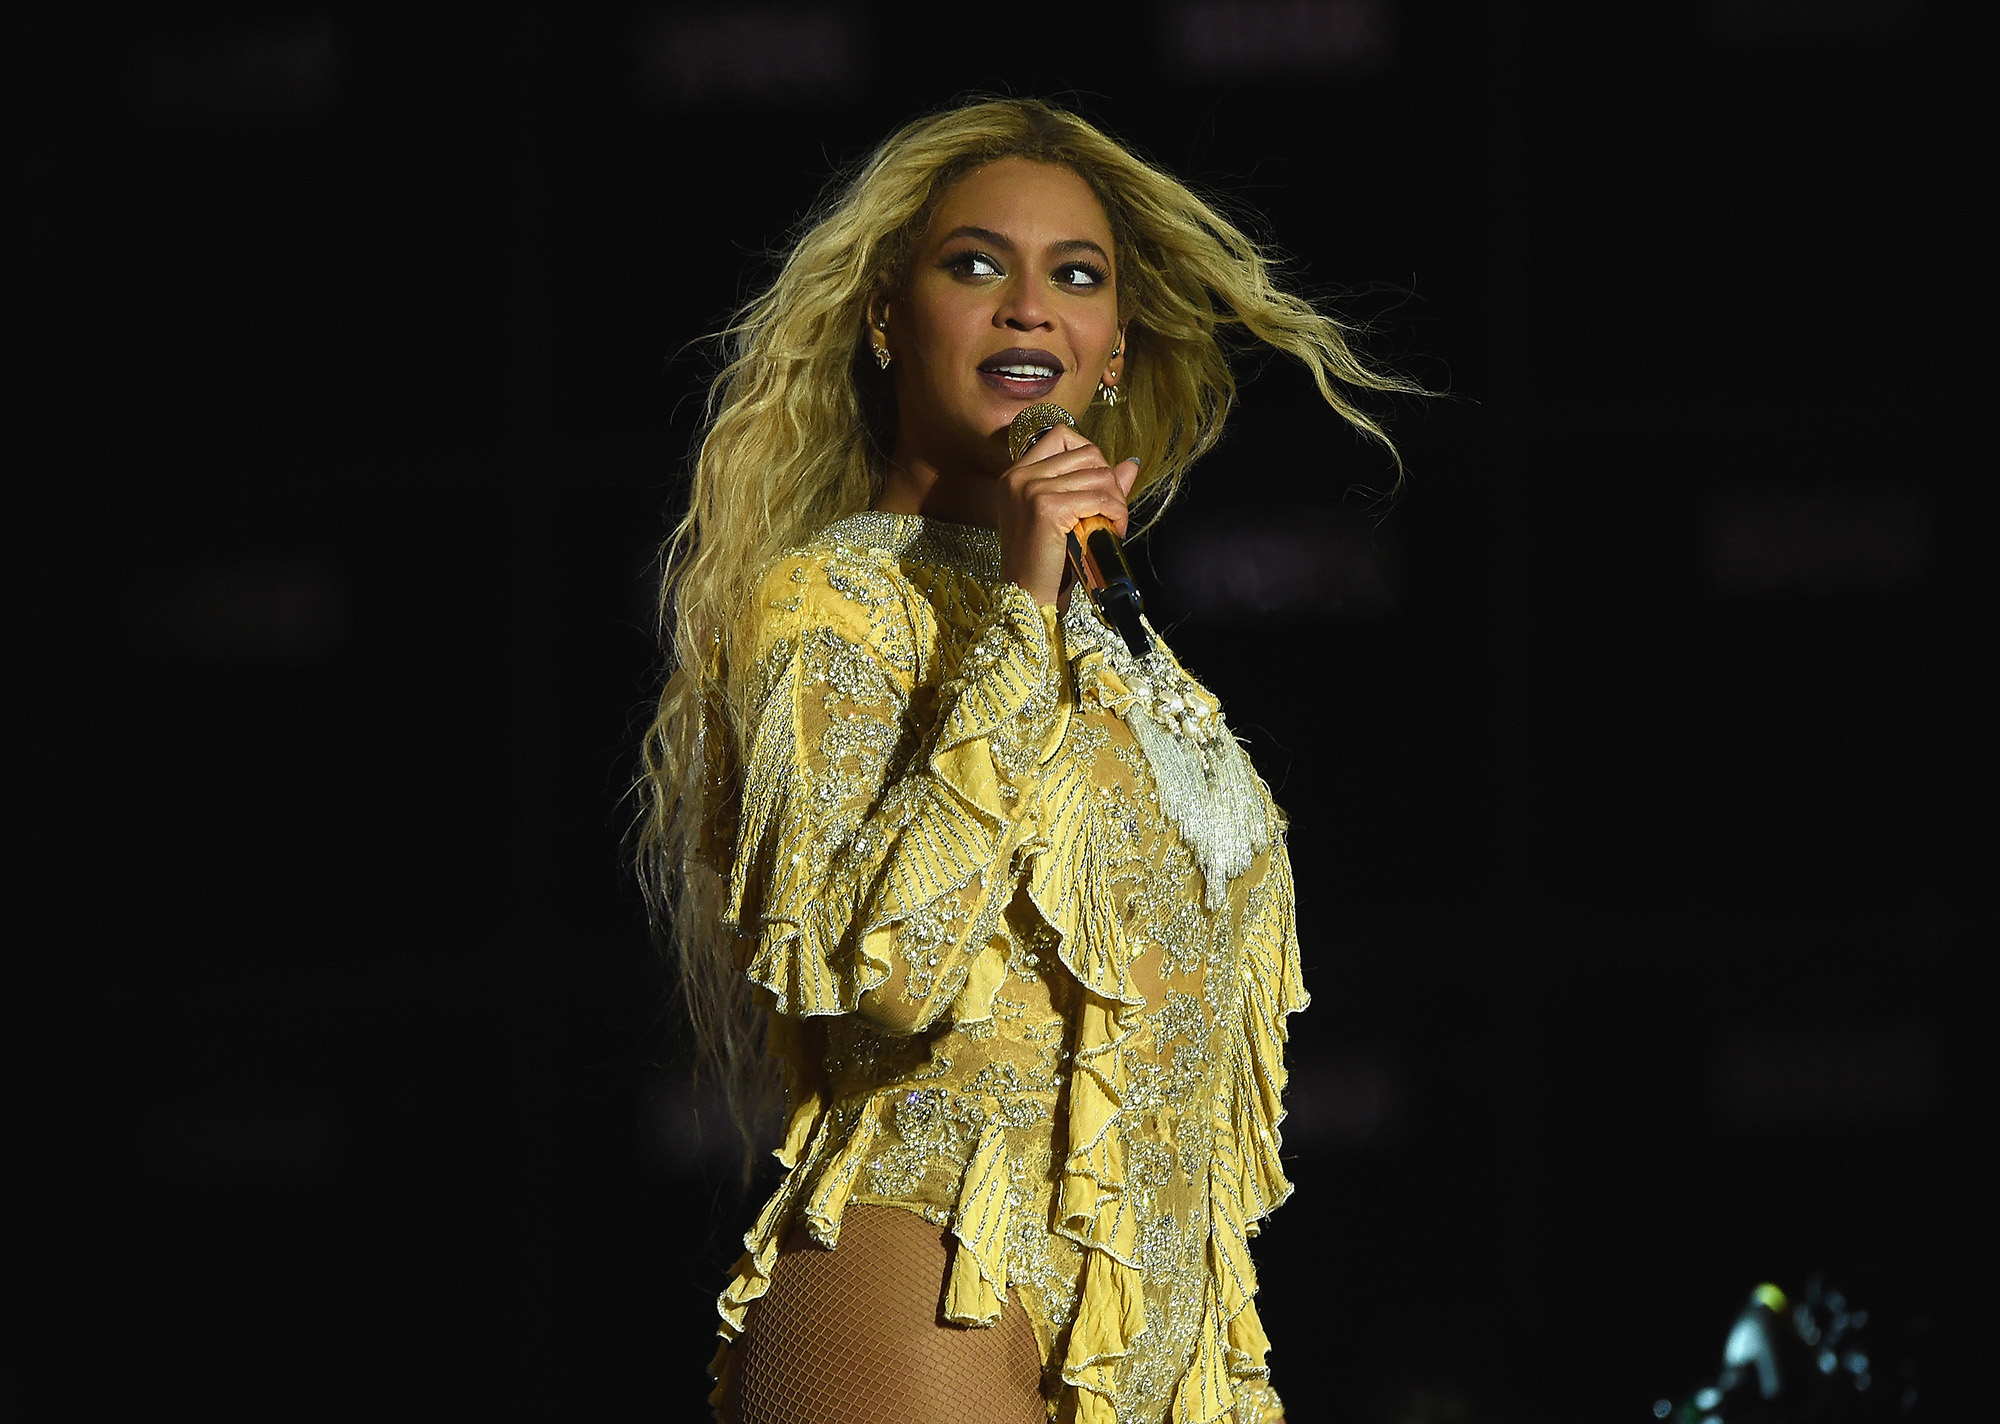 Beyonce performs during  The Formation World Tour  at MetLife Stadium on Oct. 7, 2016 in East Rutherford, New Jersey.